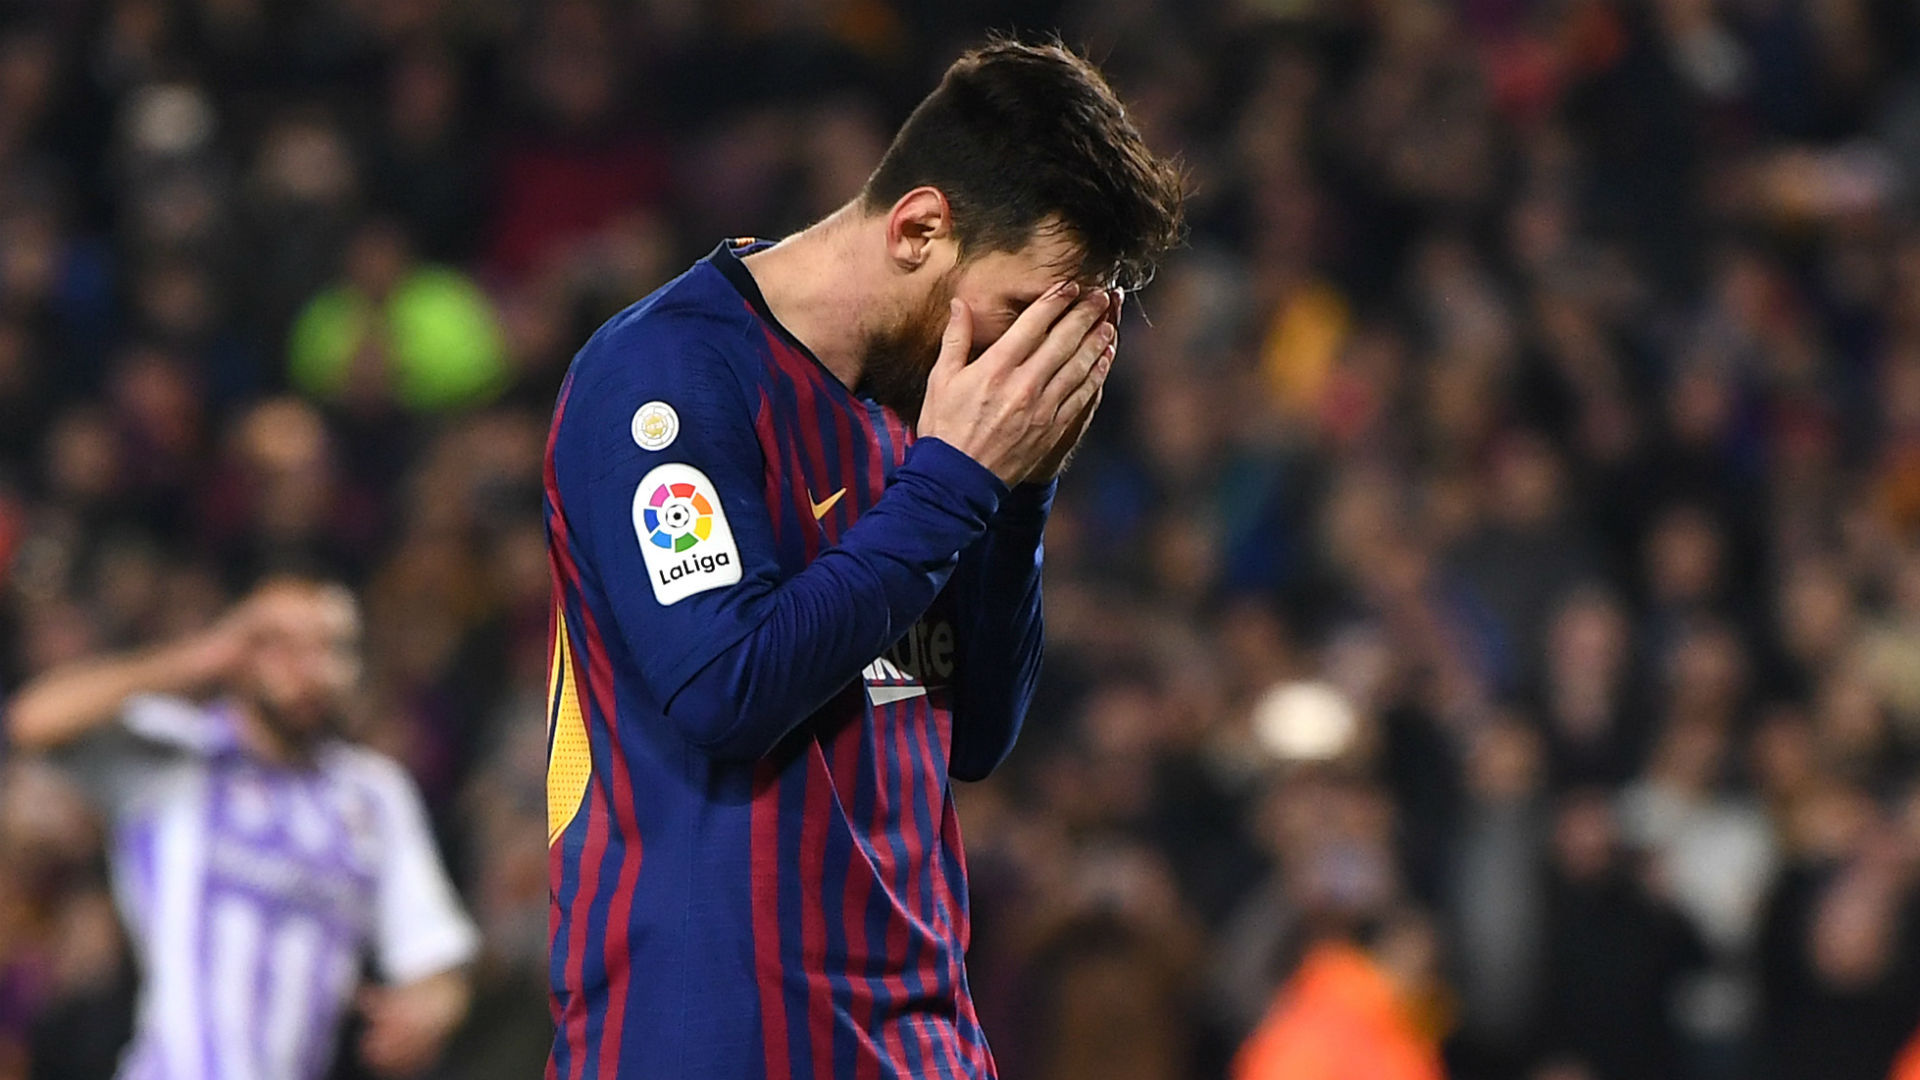 Lionel Messi misses his second penalty in Real Valladolid clash